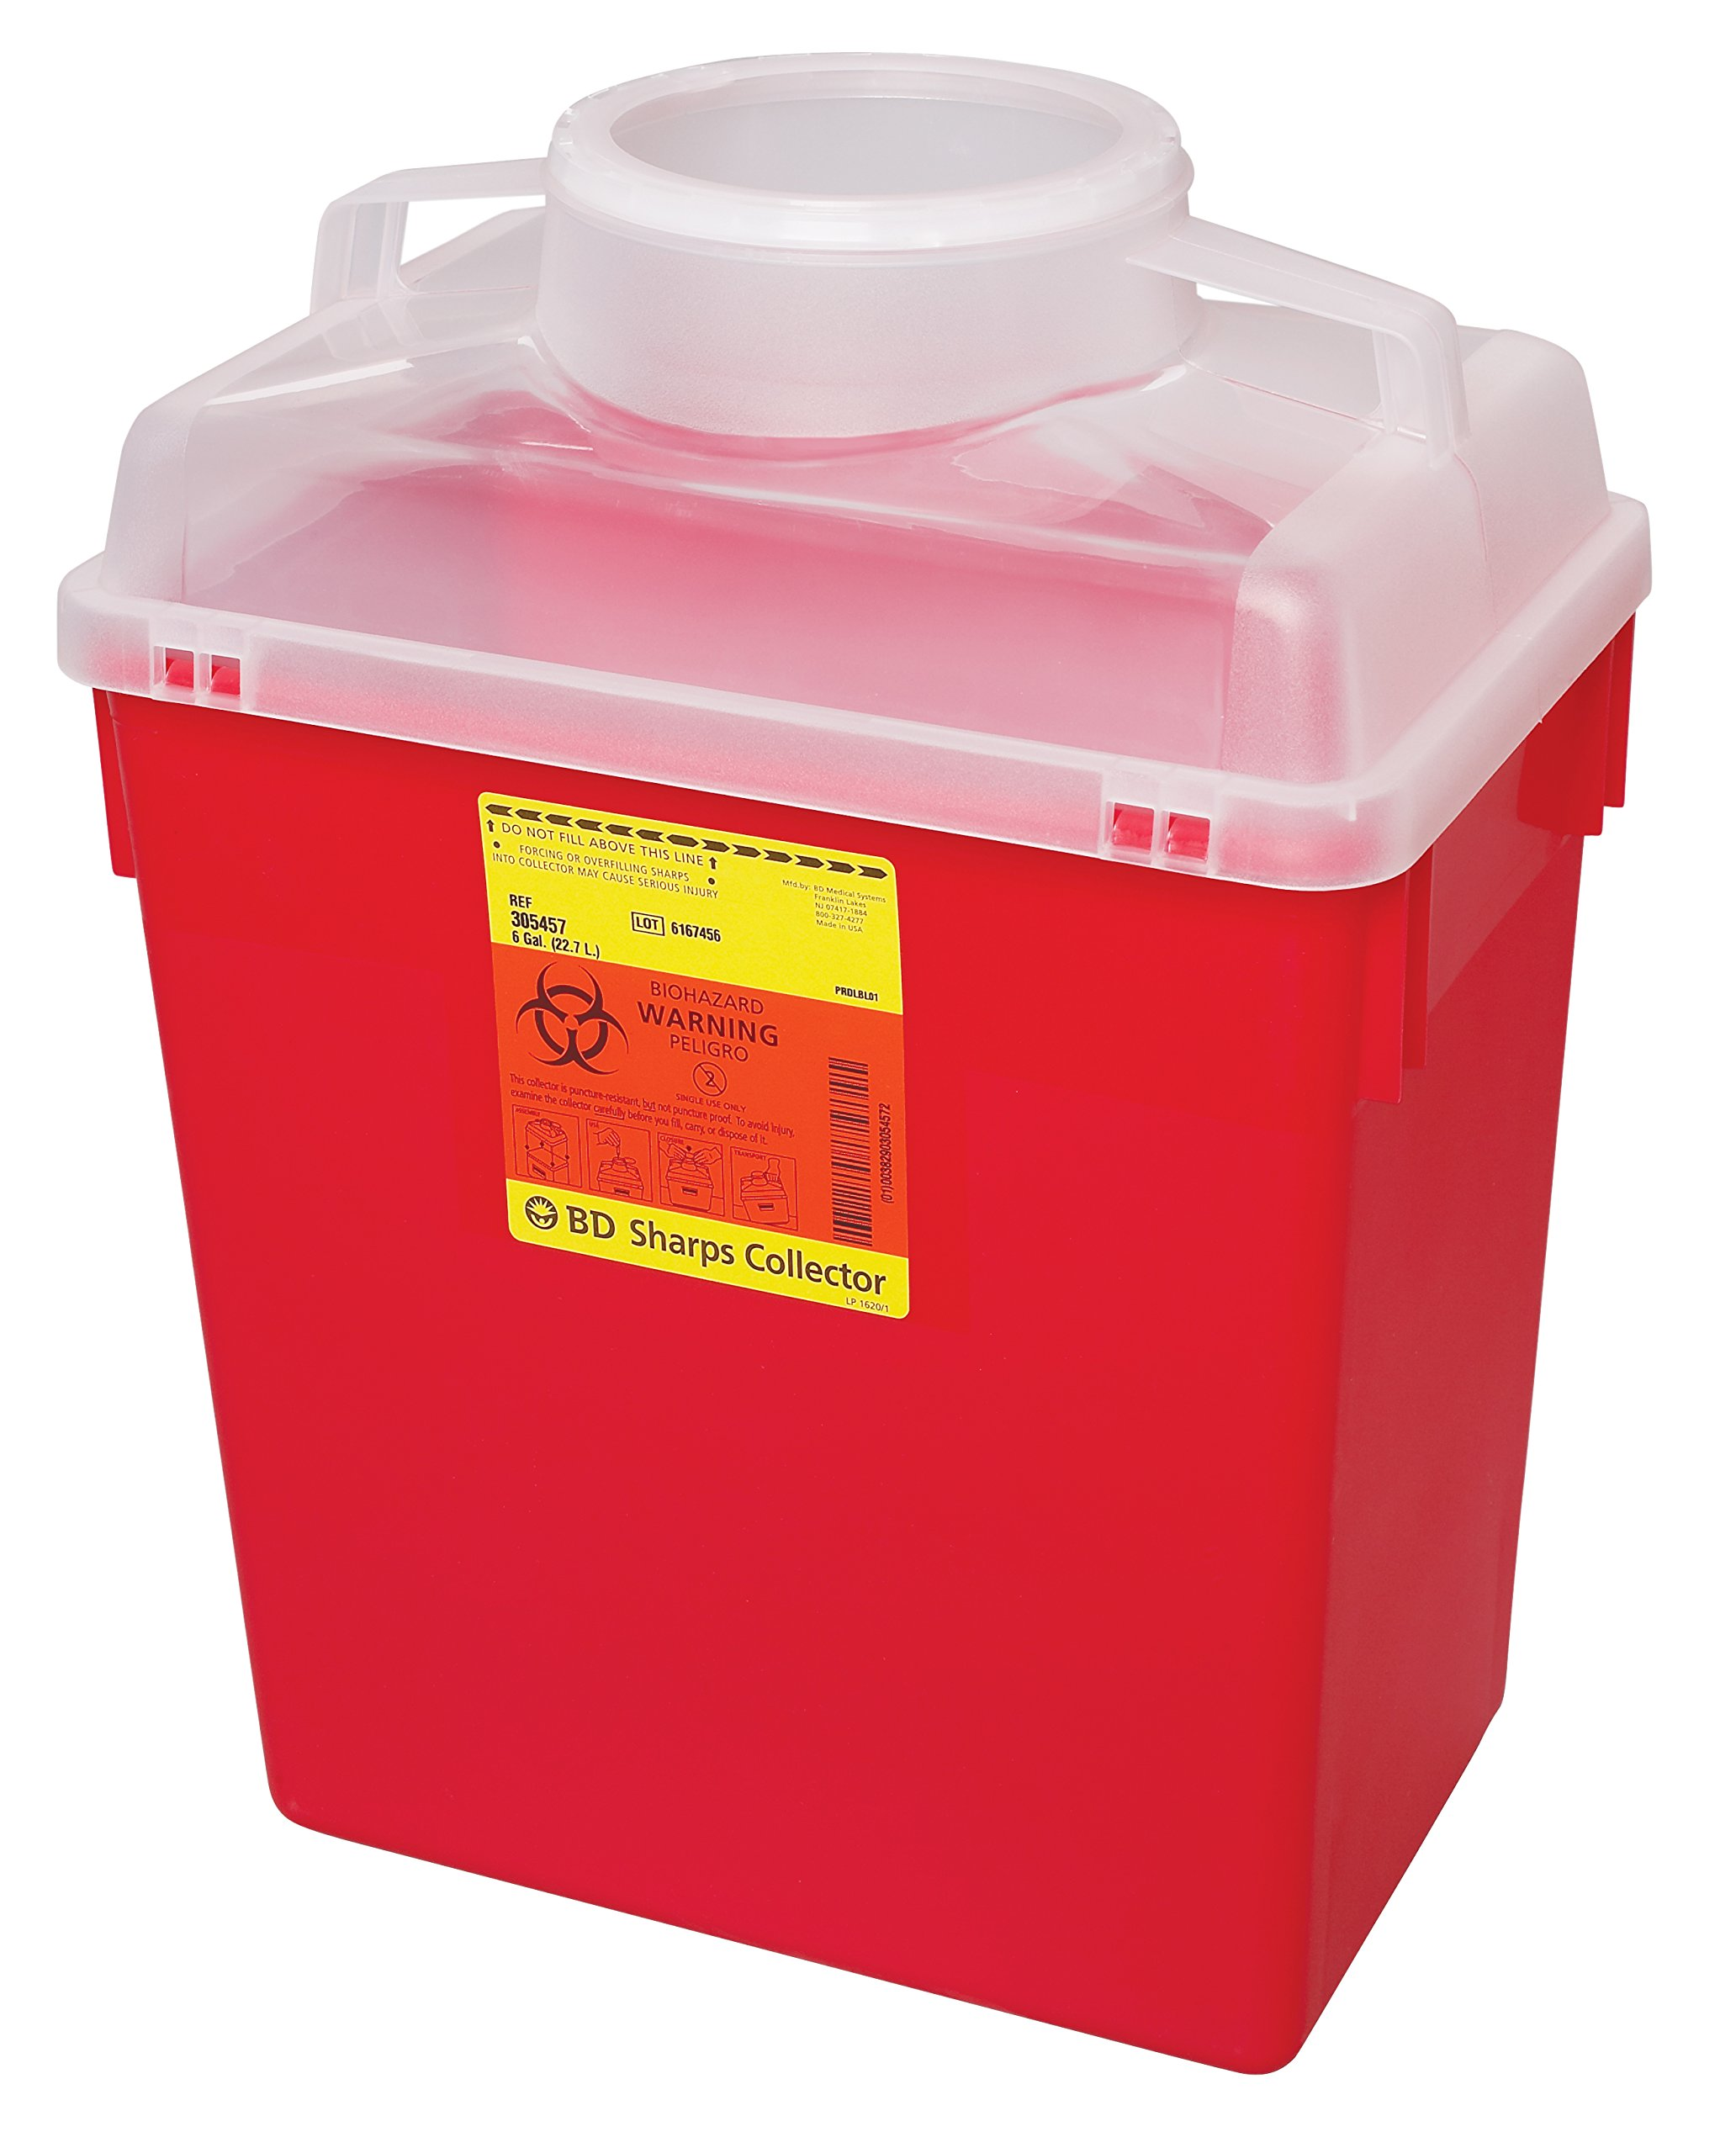 BD 305465 Multi-Use Nestable Sharps Collector with Large Funnel Clear Top, 12-1/2'' Width x 17-1/2'' Height x 8-1/2'' Depth, 6 Gallon Capacity, Red Base/Natural Top (Case of 12)